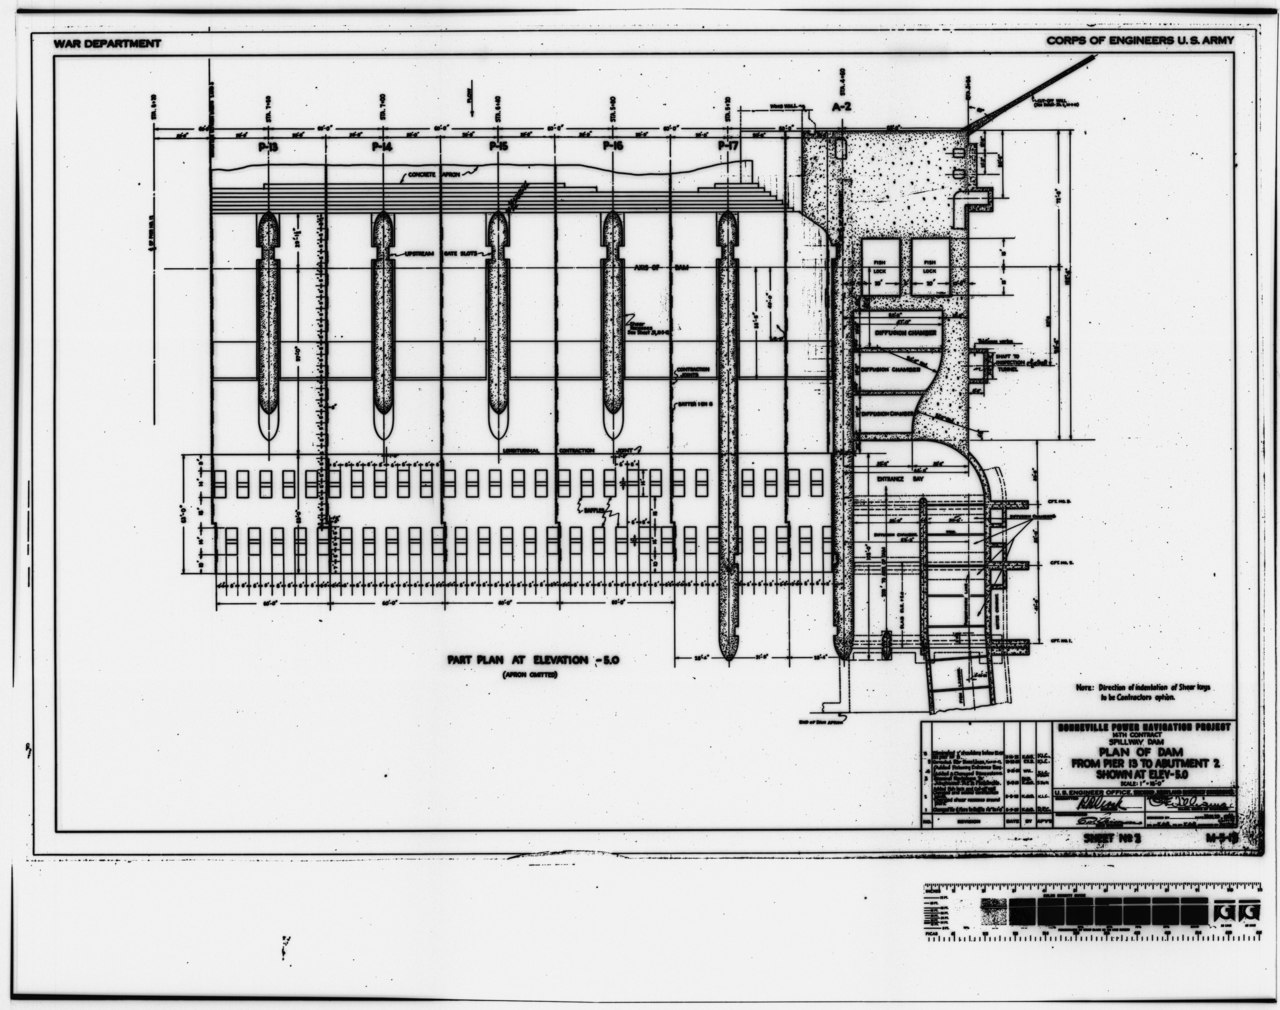 File Photocopy Of Original Construction Drawing 29 May